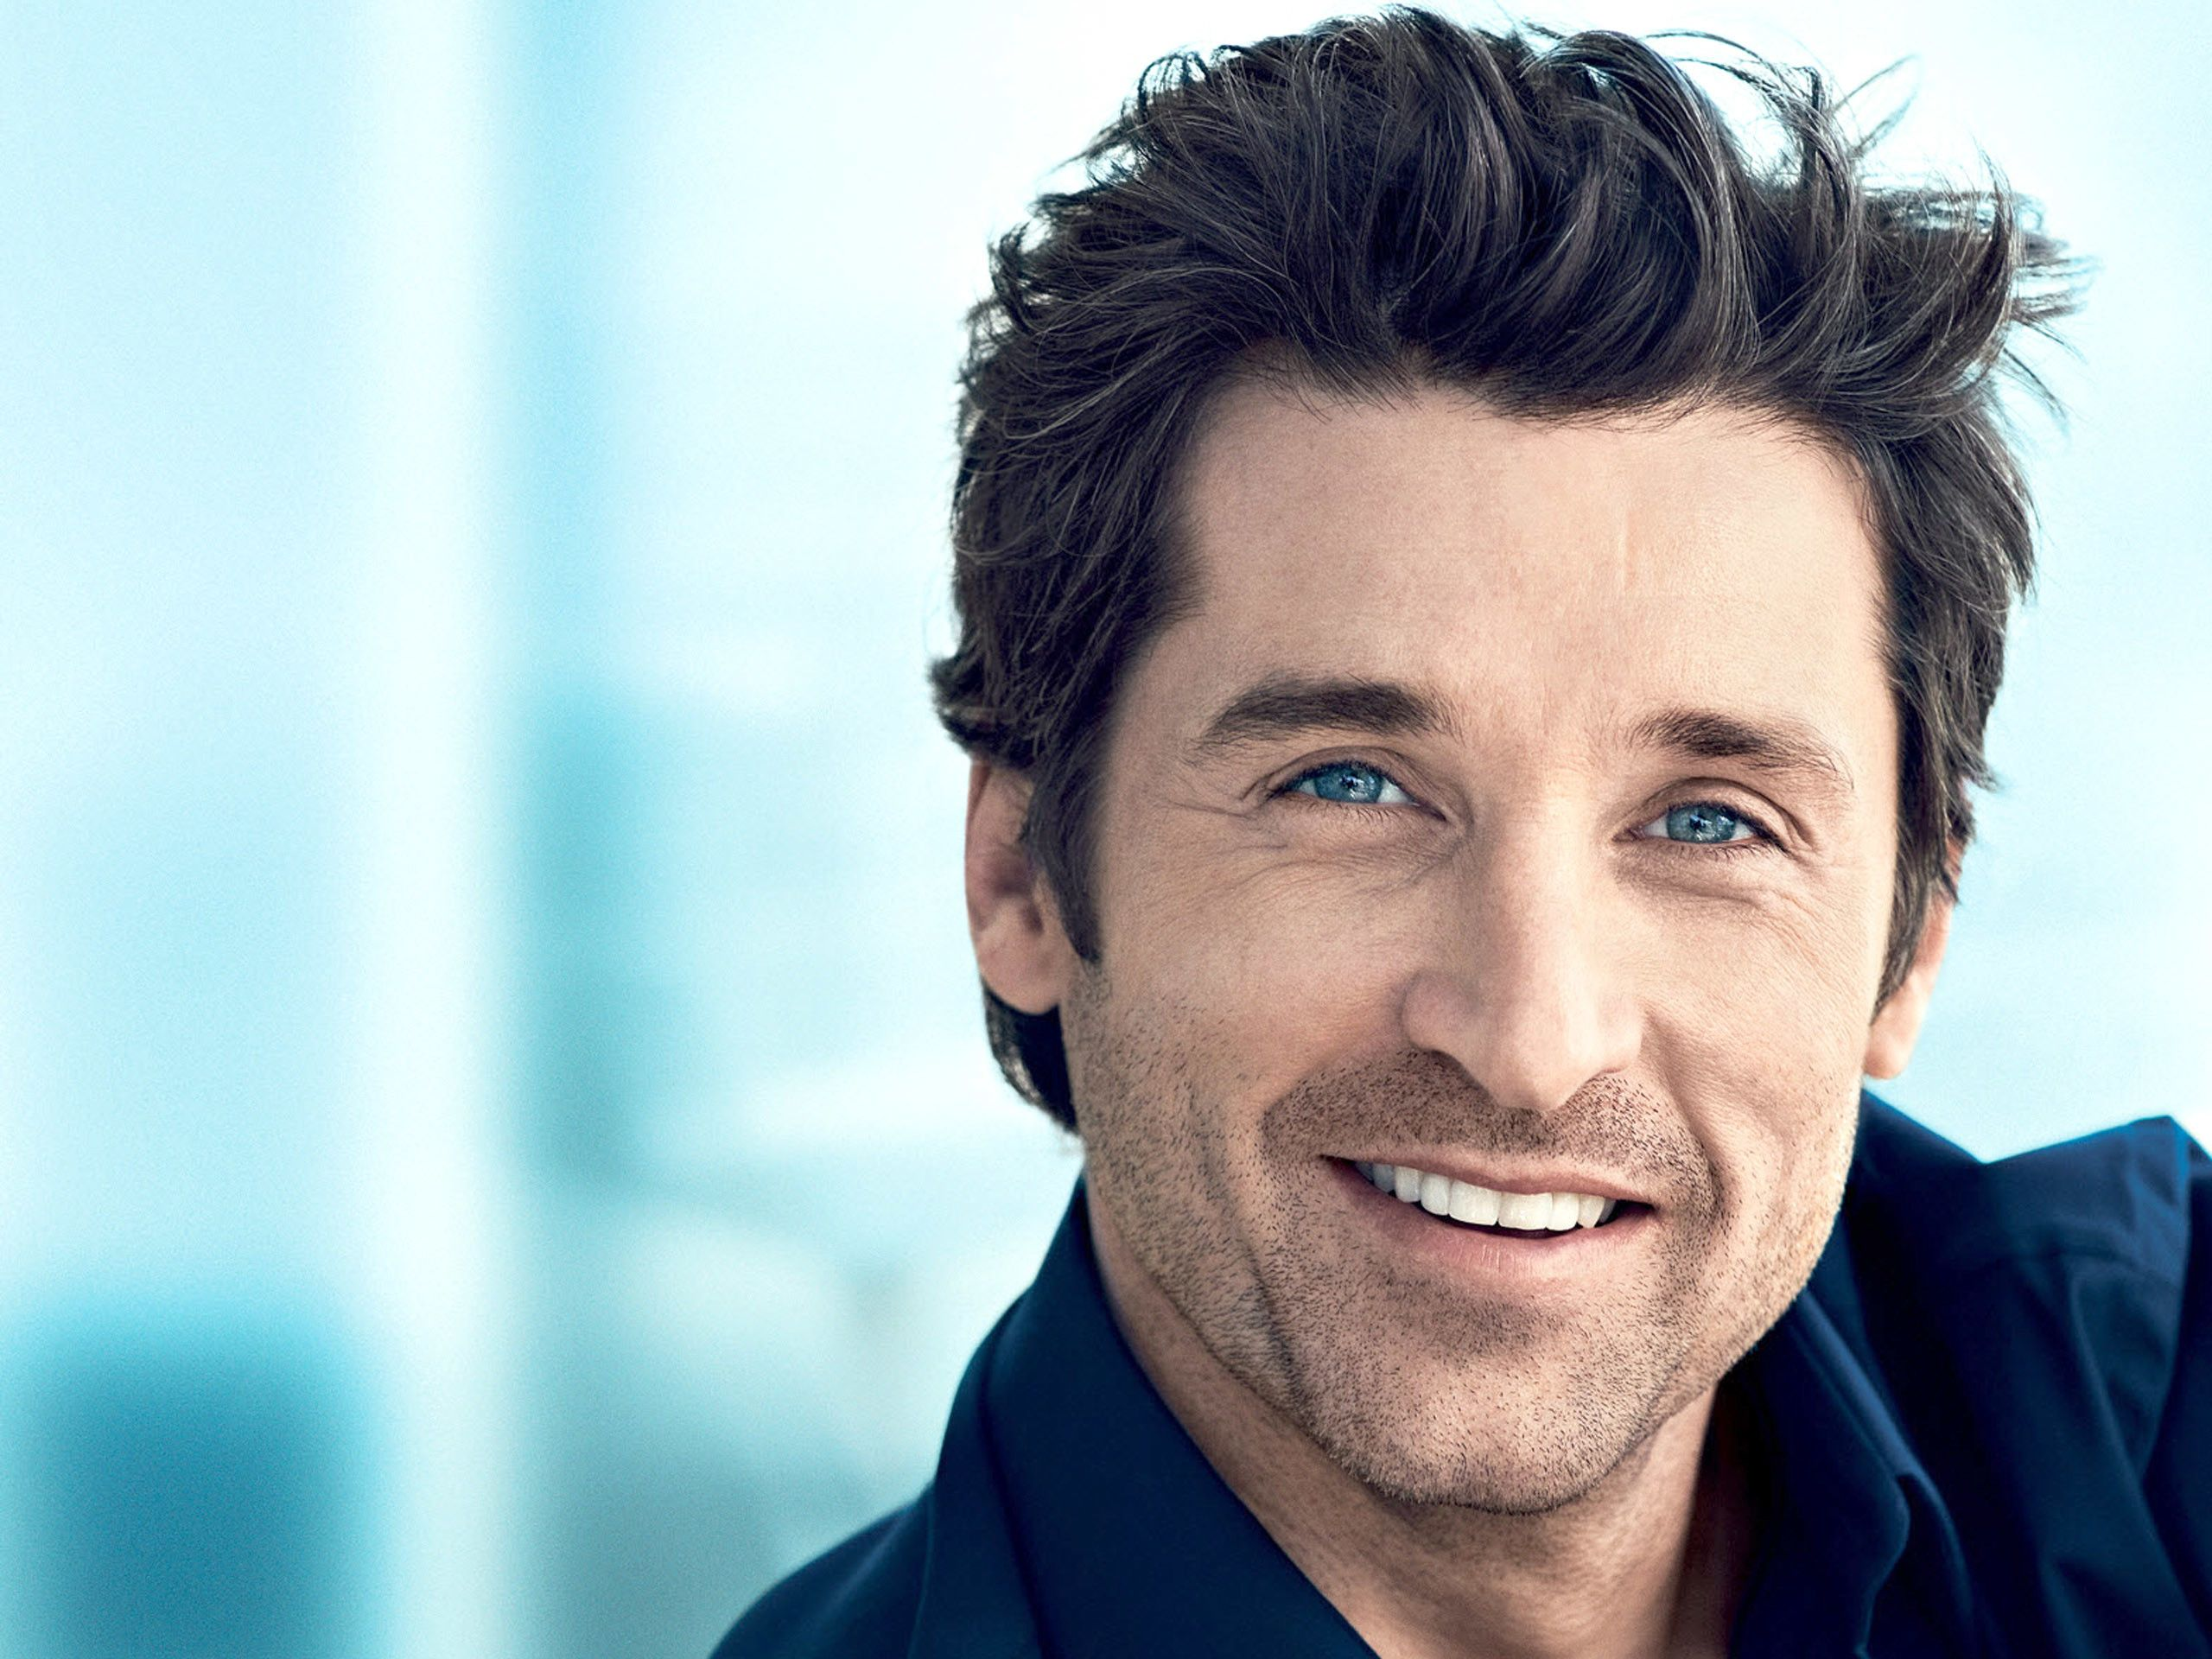 Patrick Dempsey Beautiful Blue Eyes Hot Male Celebrities